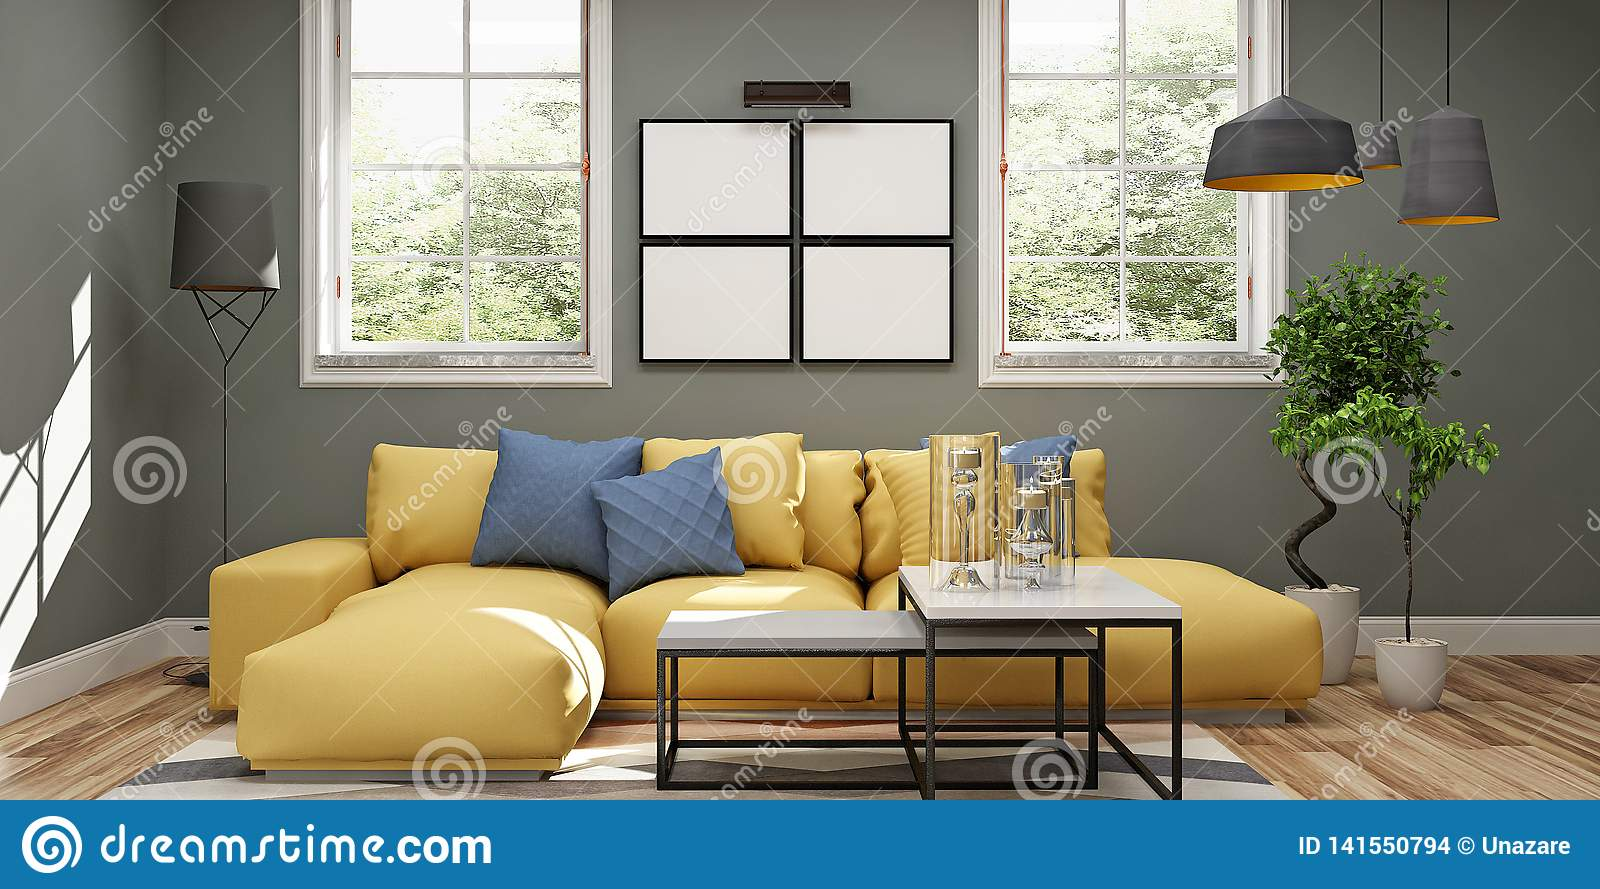 Modern Interior Of Living Room With Kitchen In Brown And Yellow